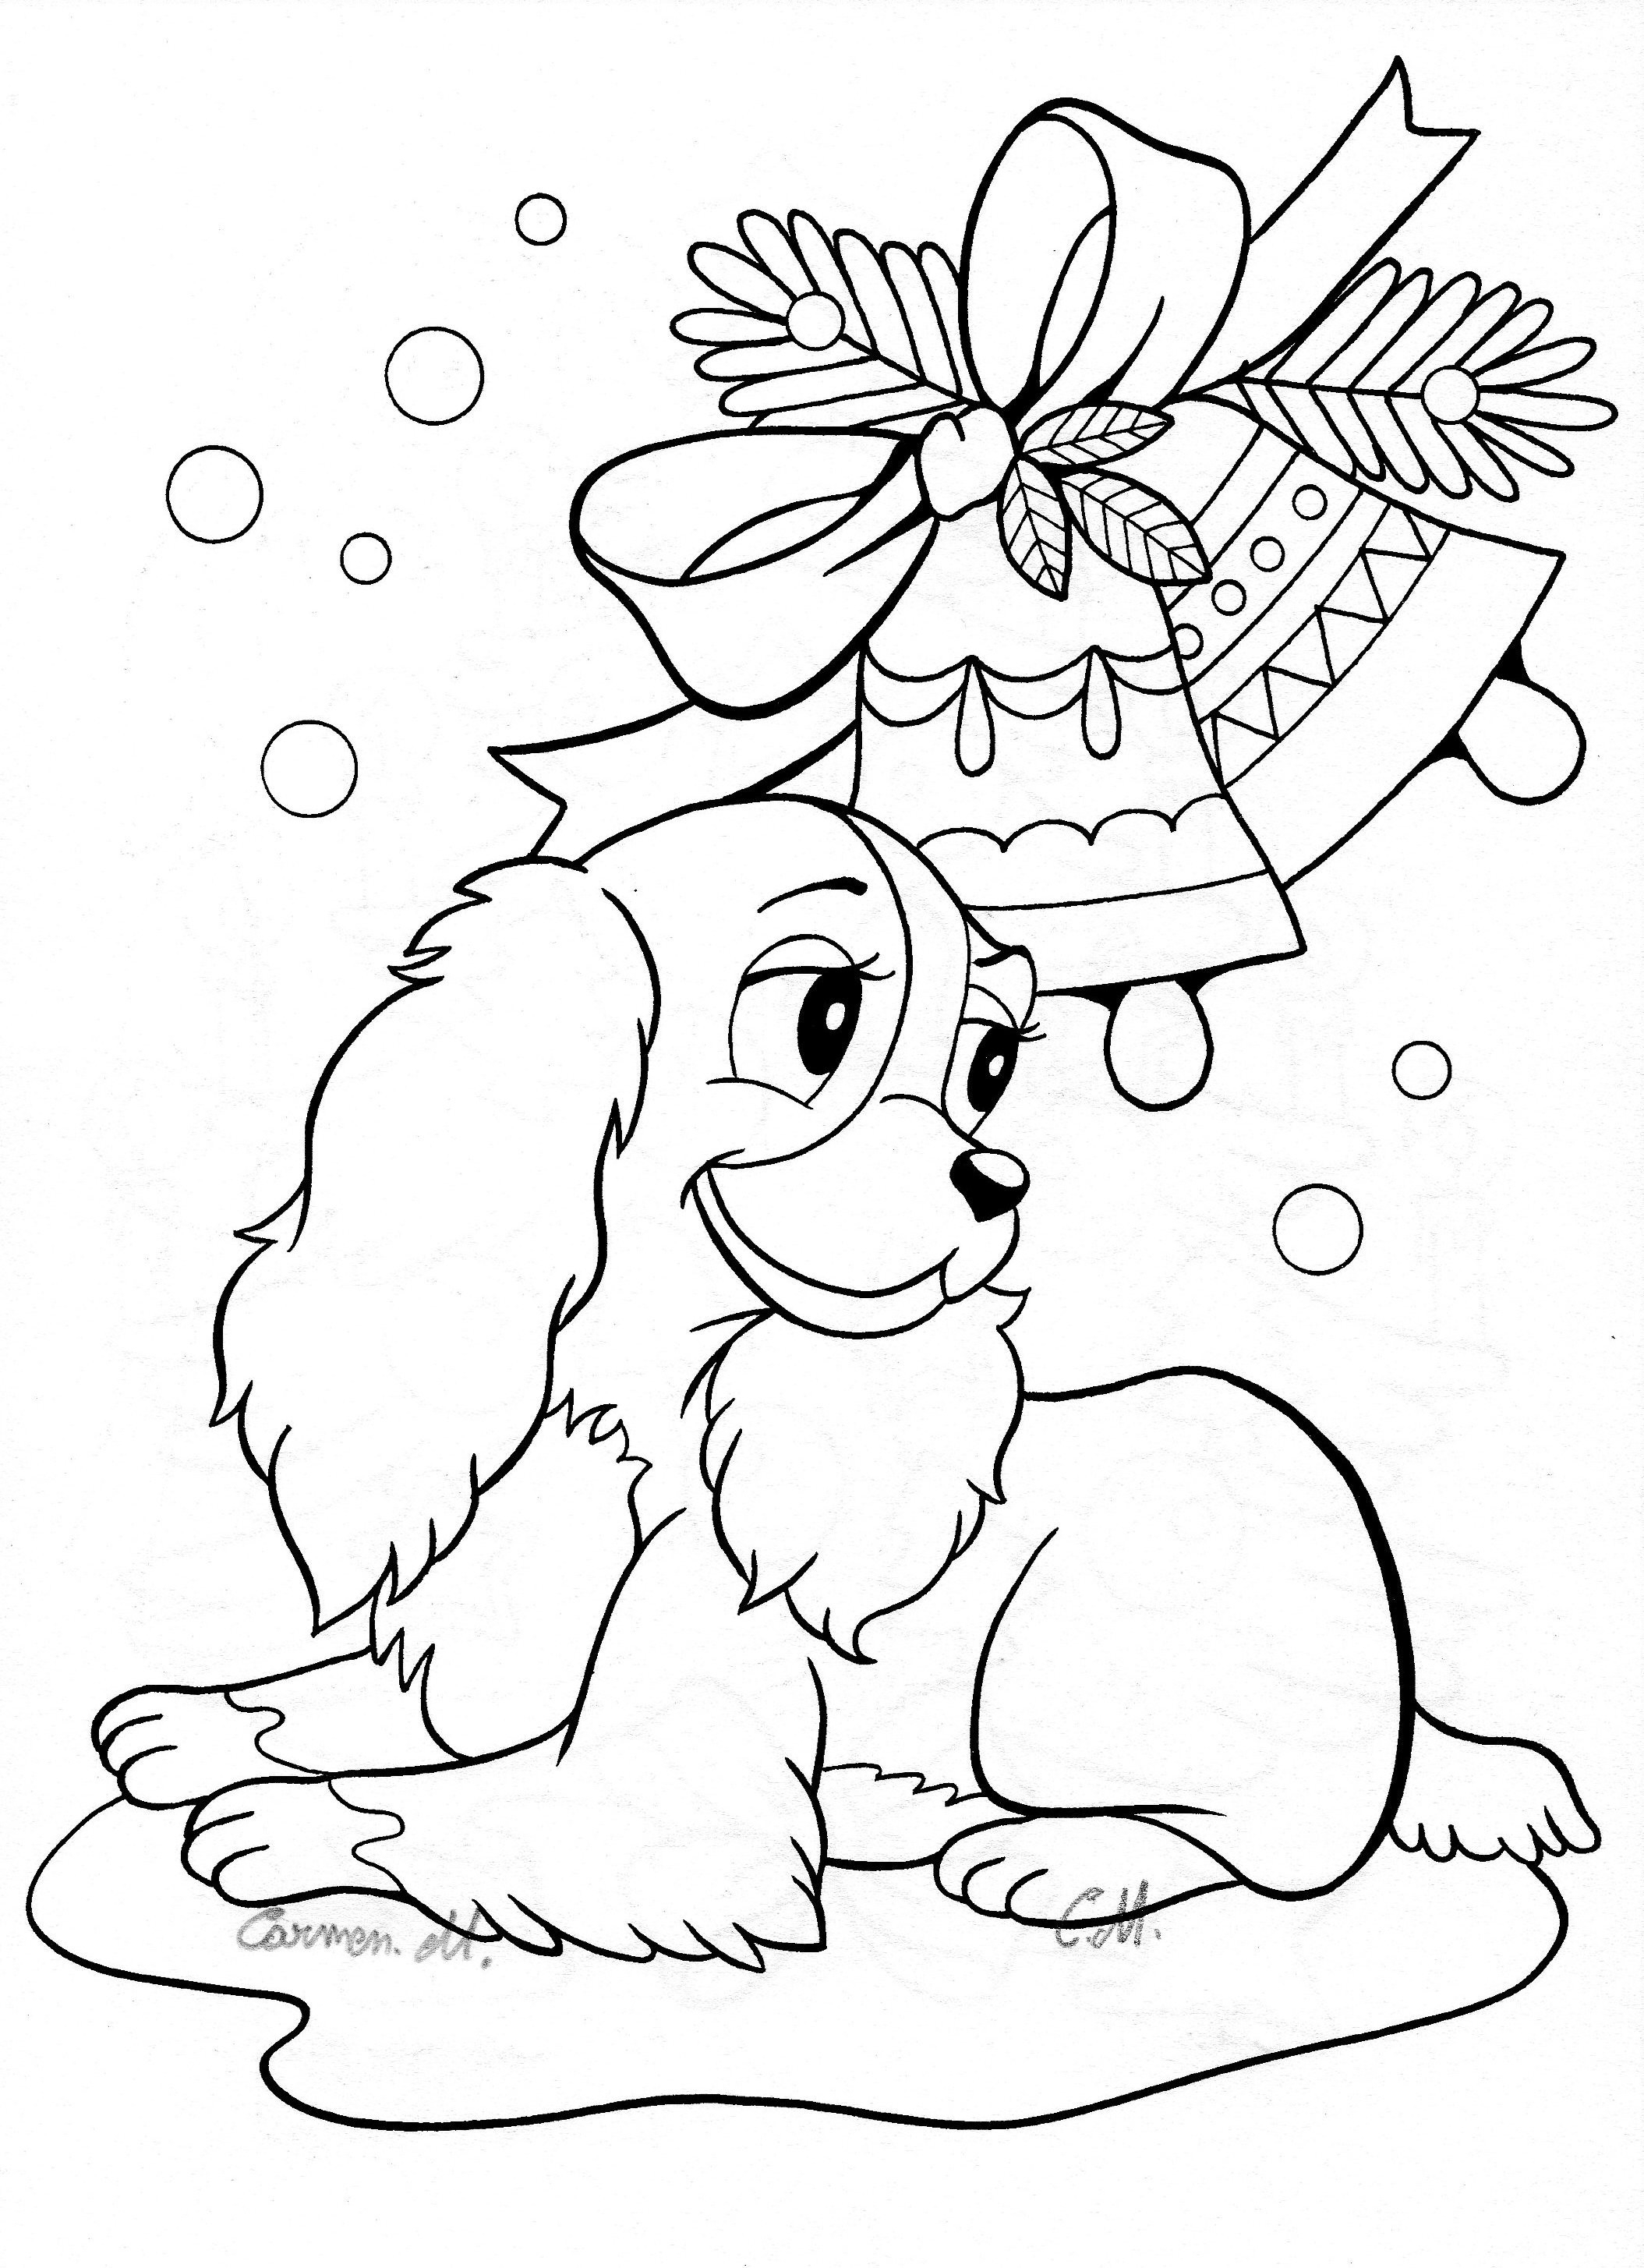 Groundhog Day Printable Coloring Pages Coloring Book Holiday Coloring Pages For Kindergarten Awesome